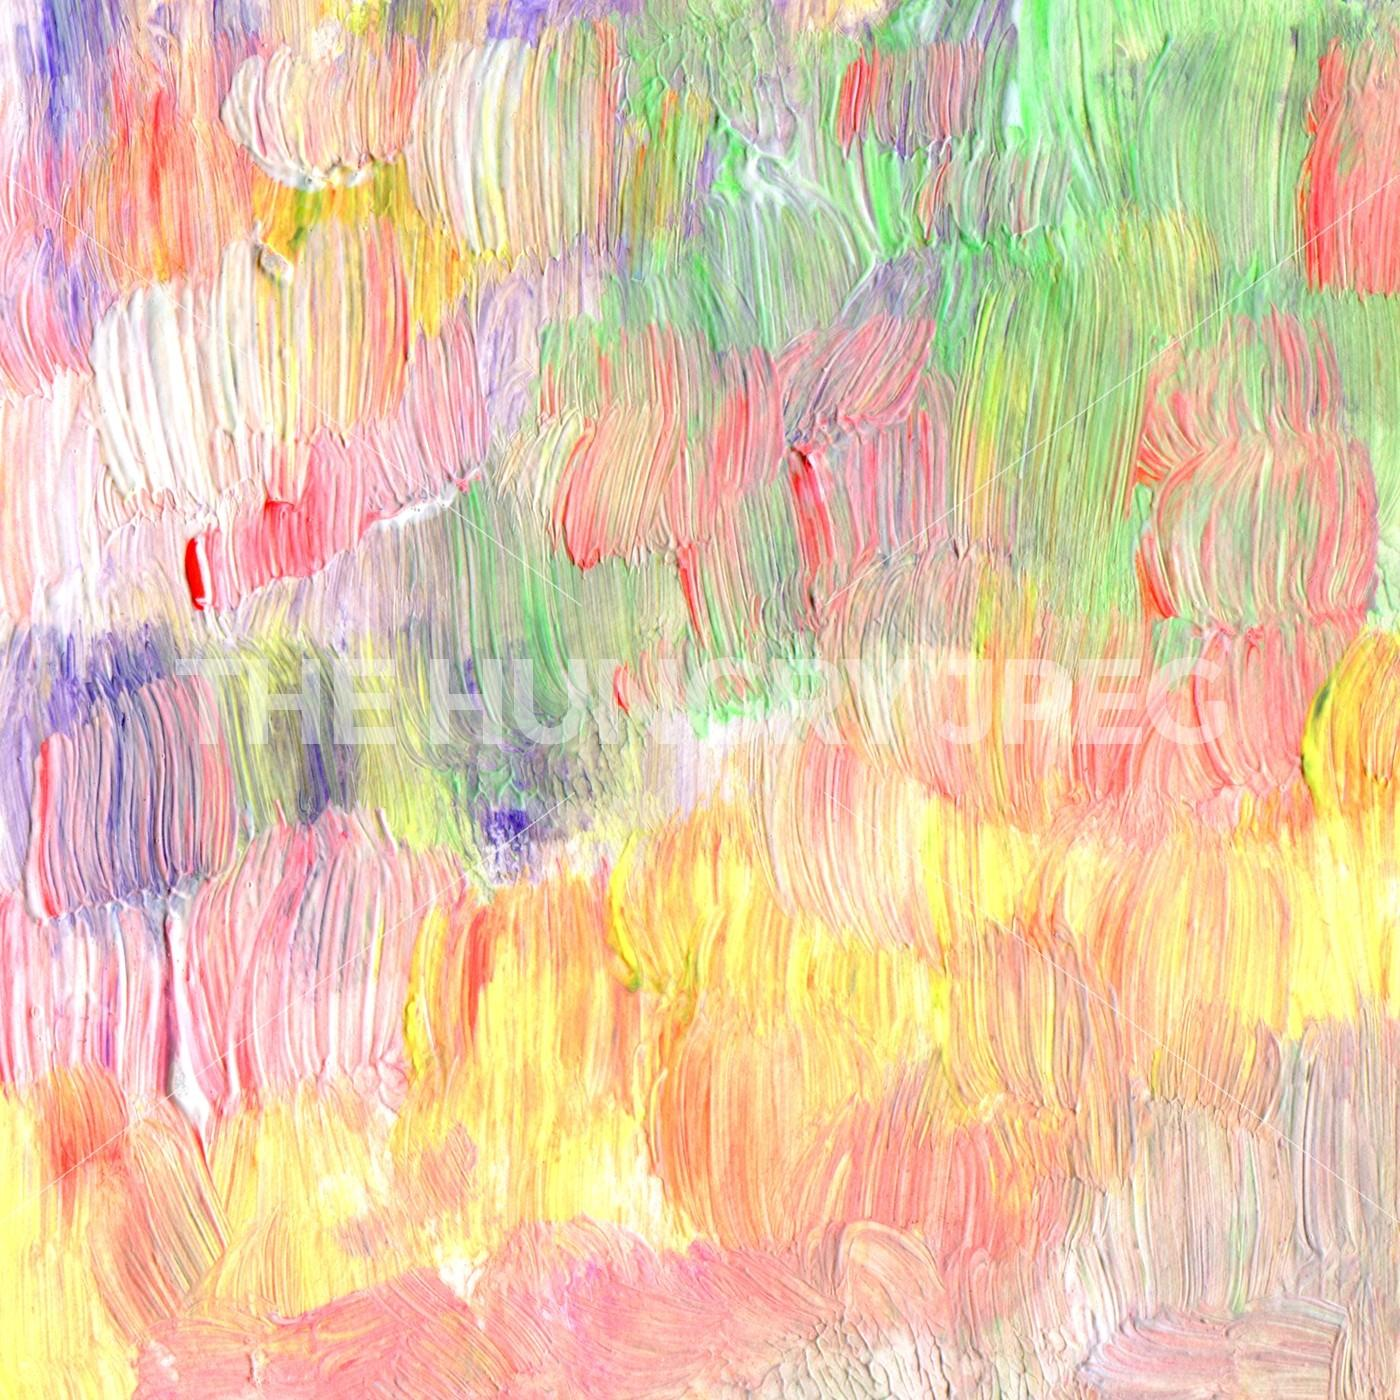 Abstract Acrylic Watercolor Brush Strokes Painted